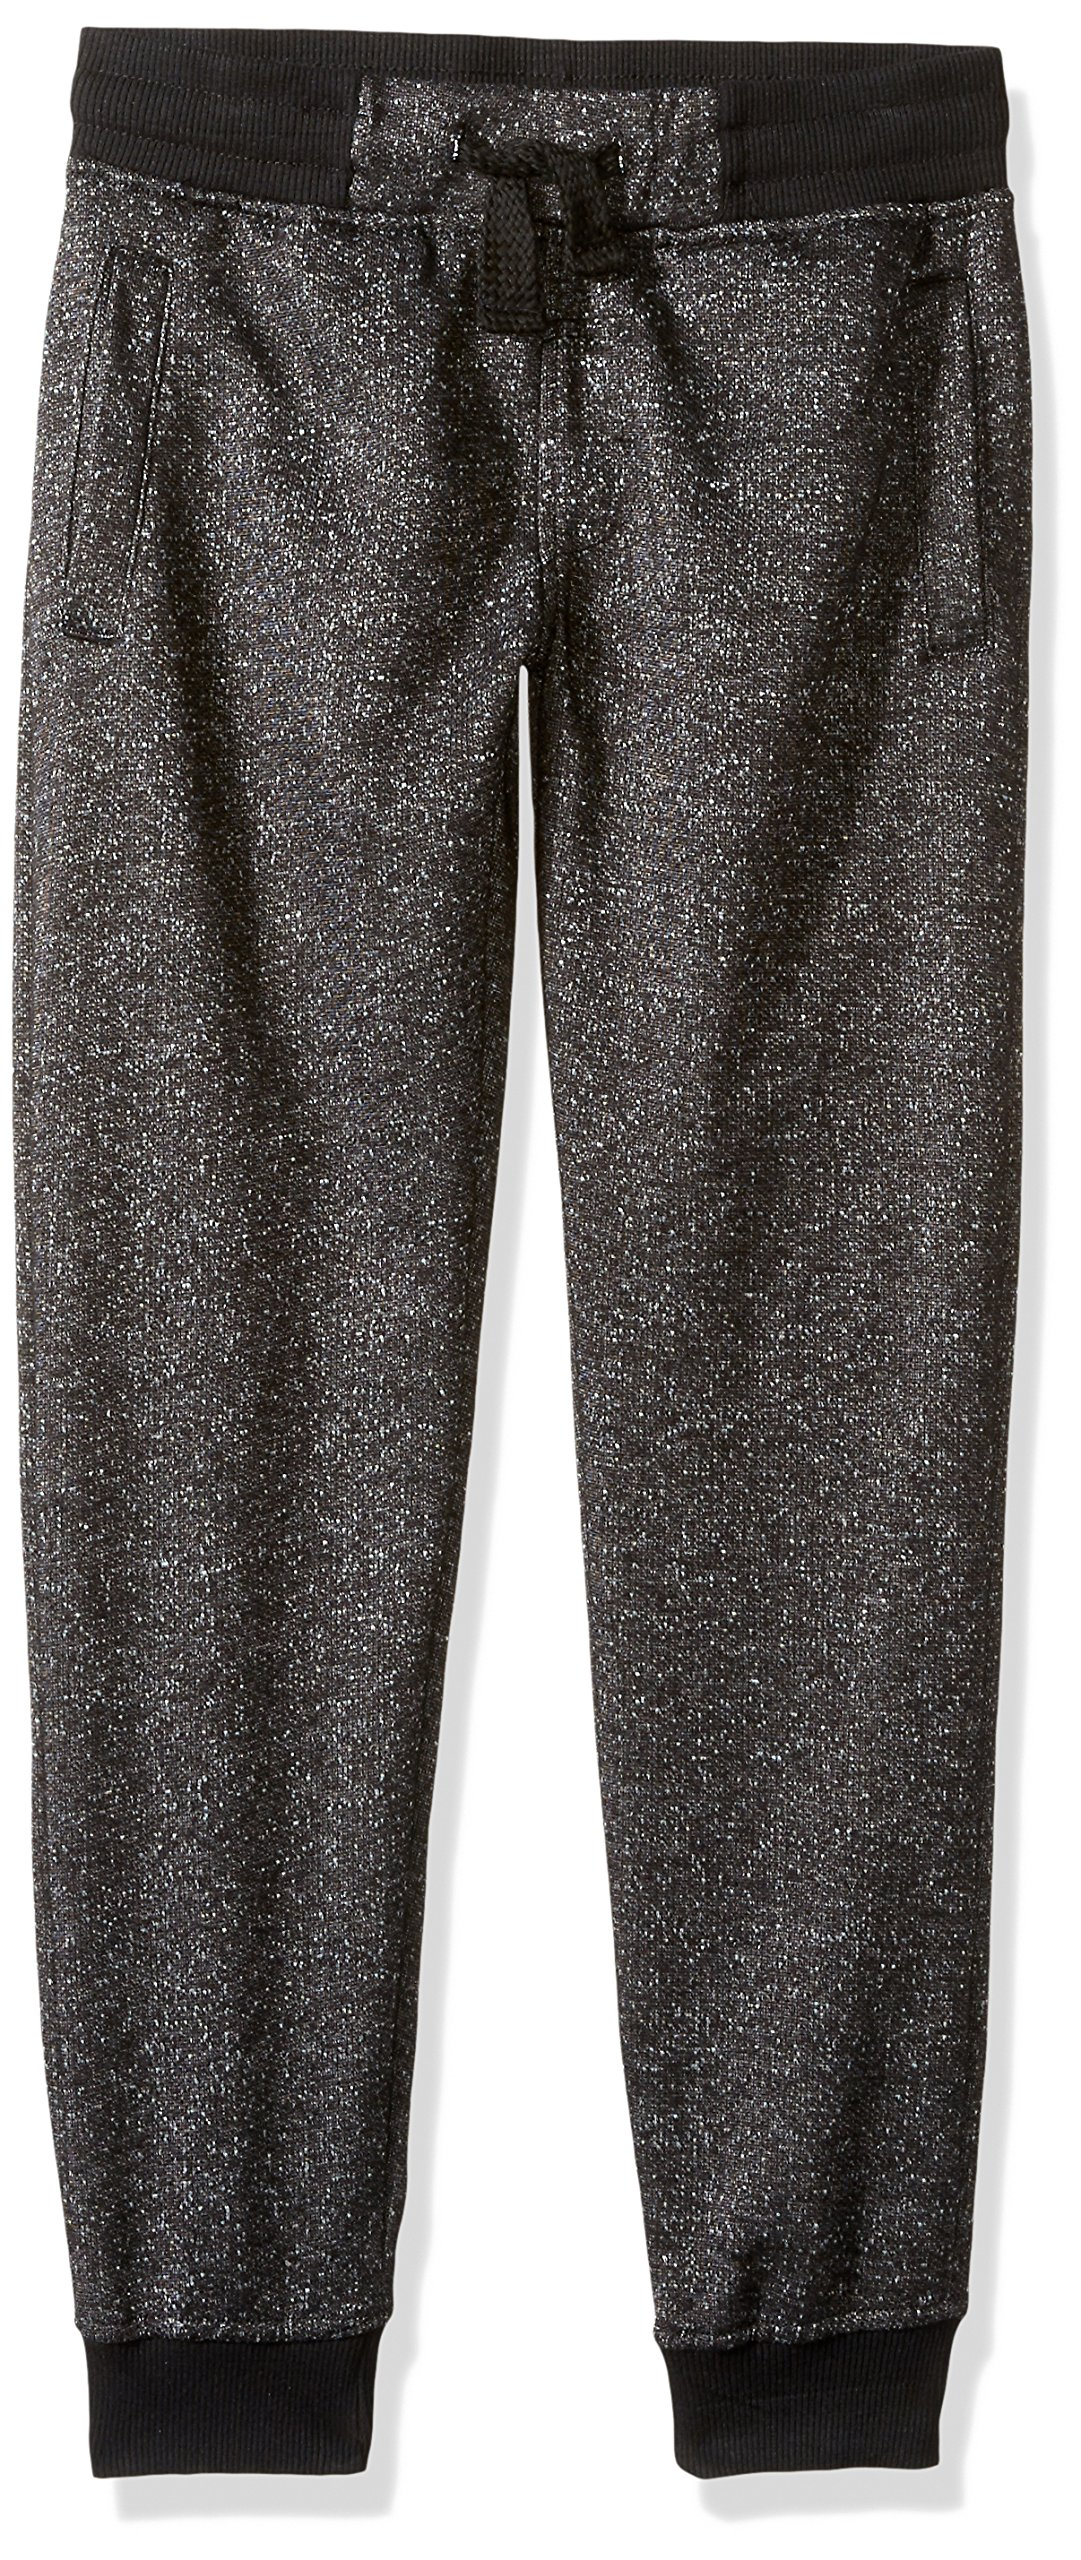 971c4a164 Get Quotations · Southpole Big Boys  Jogger Pants In French Terry Basic  Marled